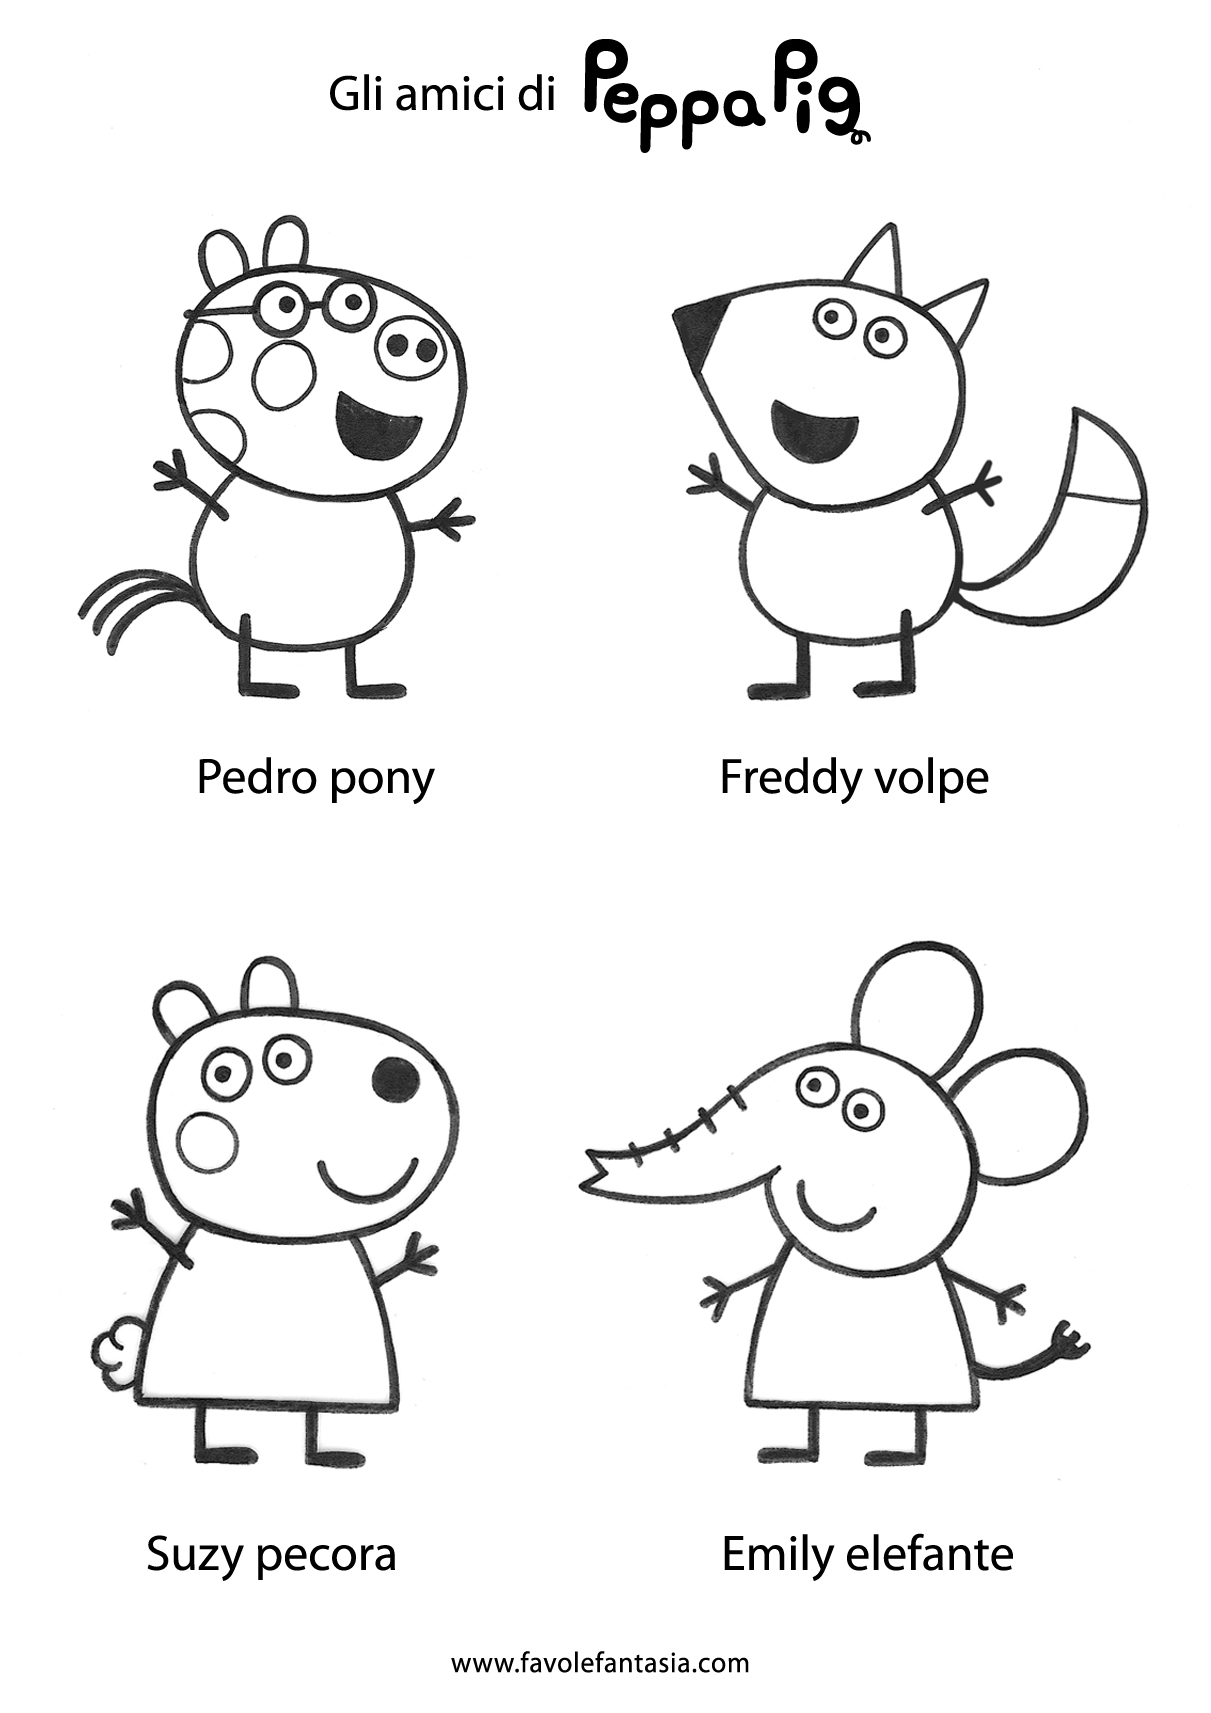 Free coloring pages of peppa pig pedro